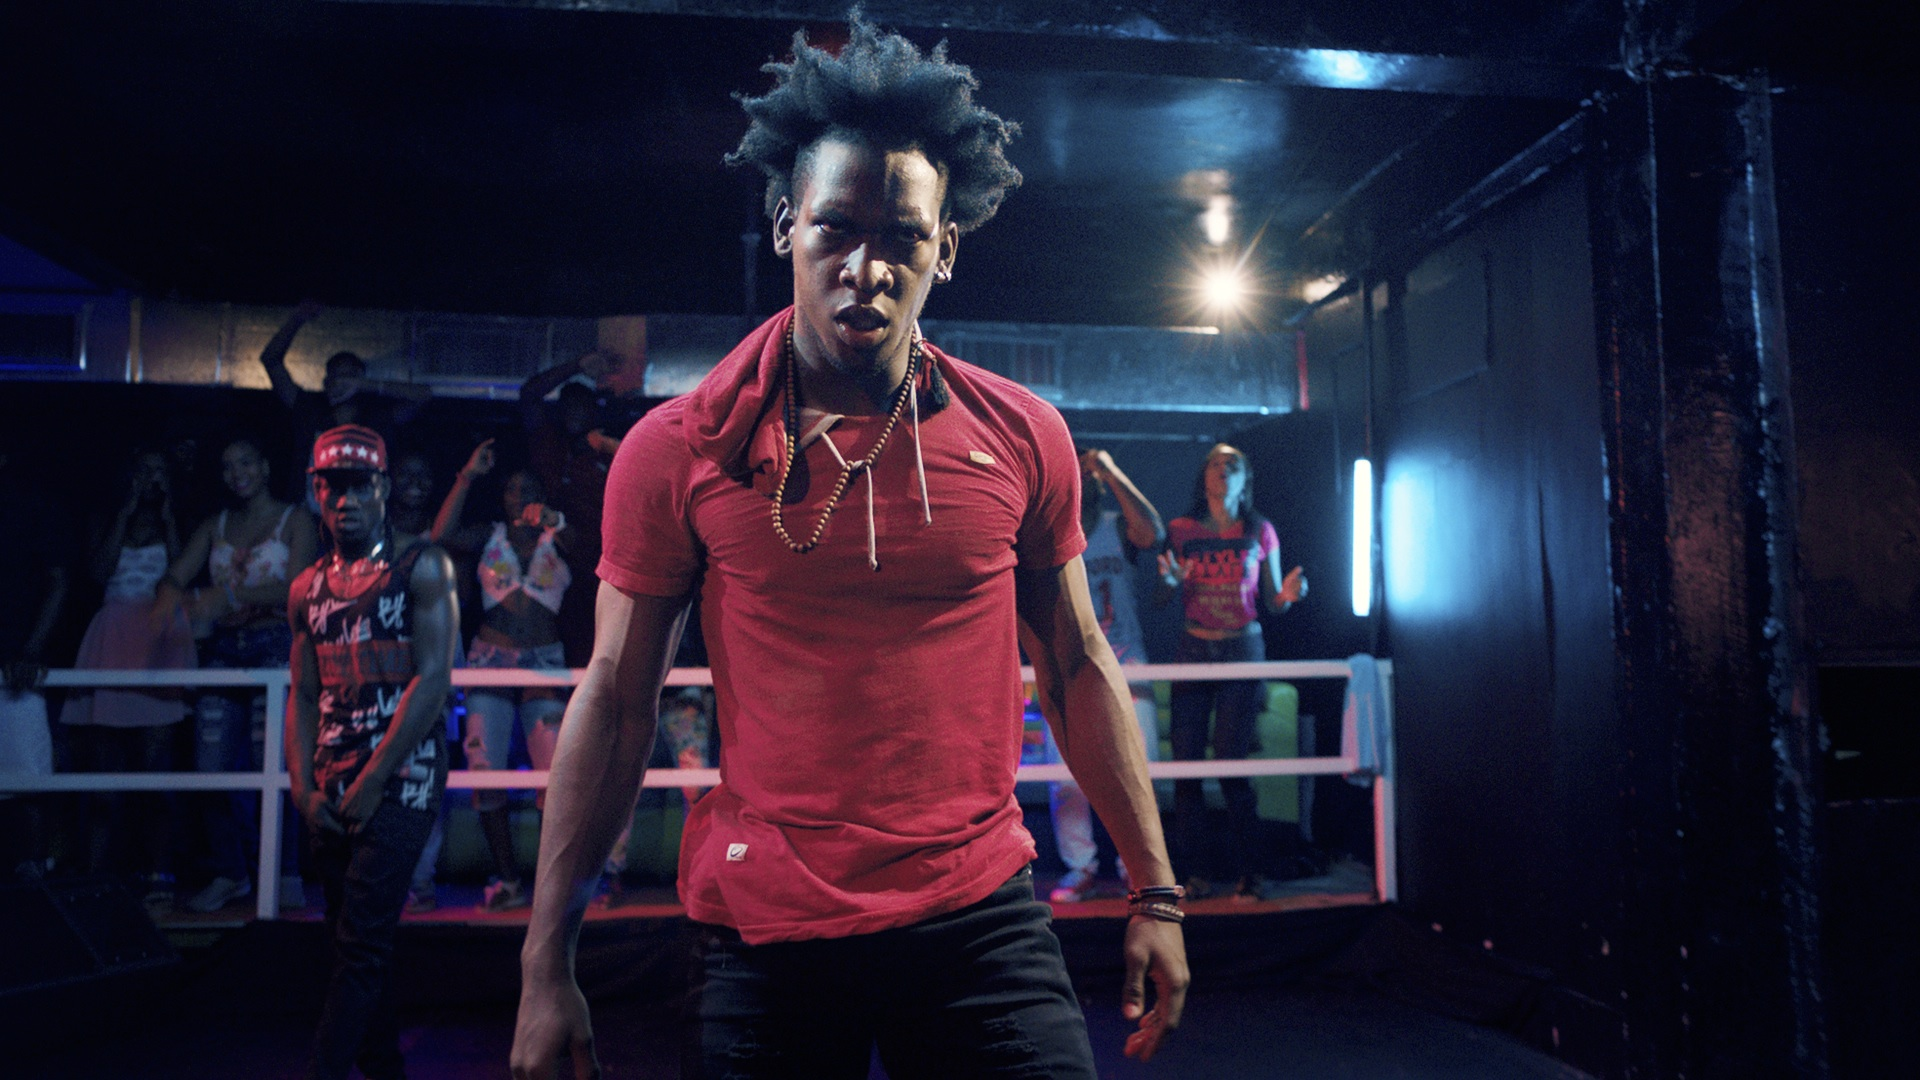 From Dance Battles to Superheroes: 10 Must-See Latino Movies at Palm Springs International Film Festival